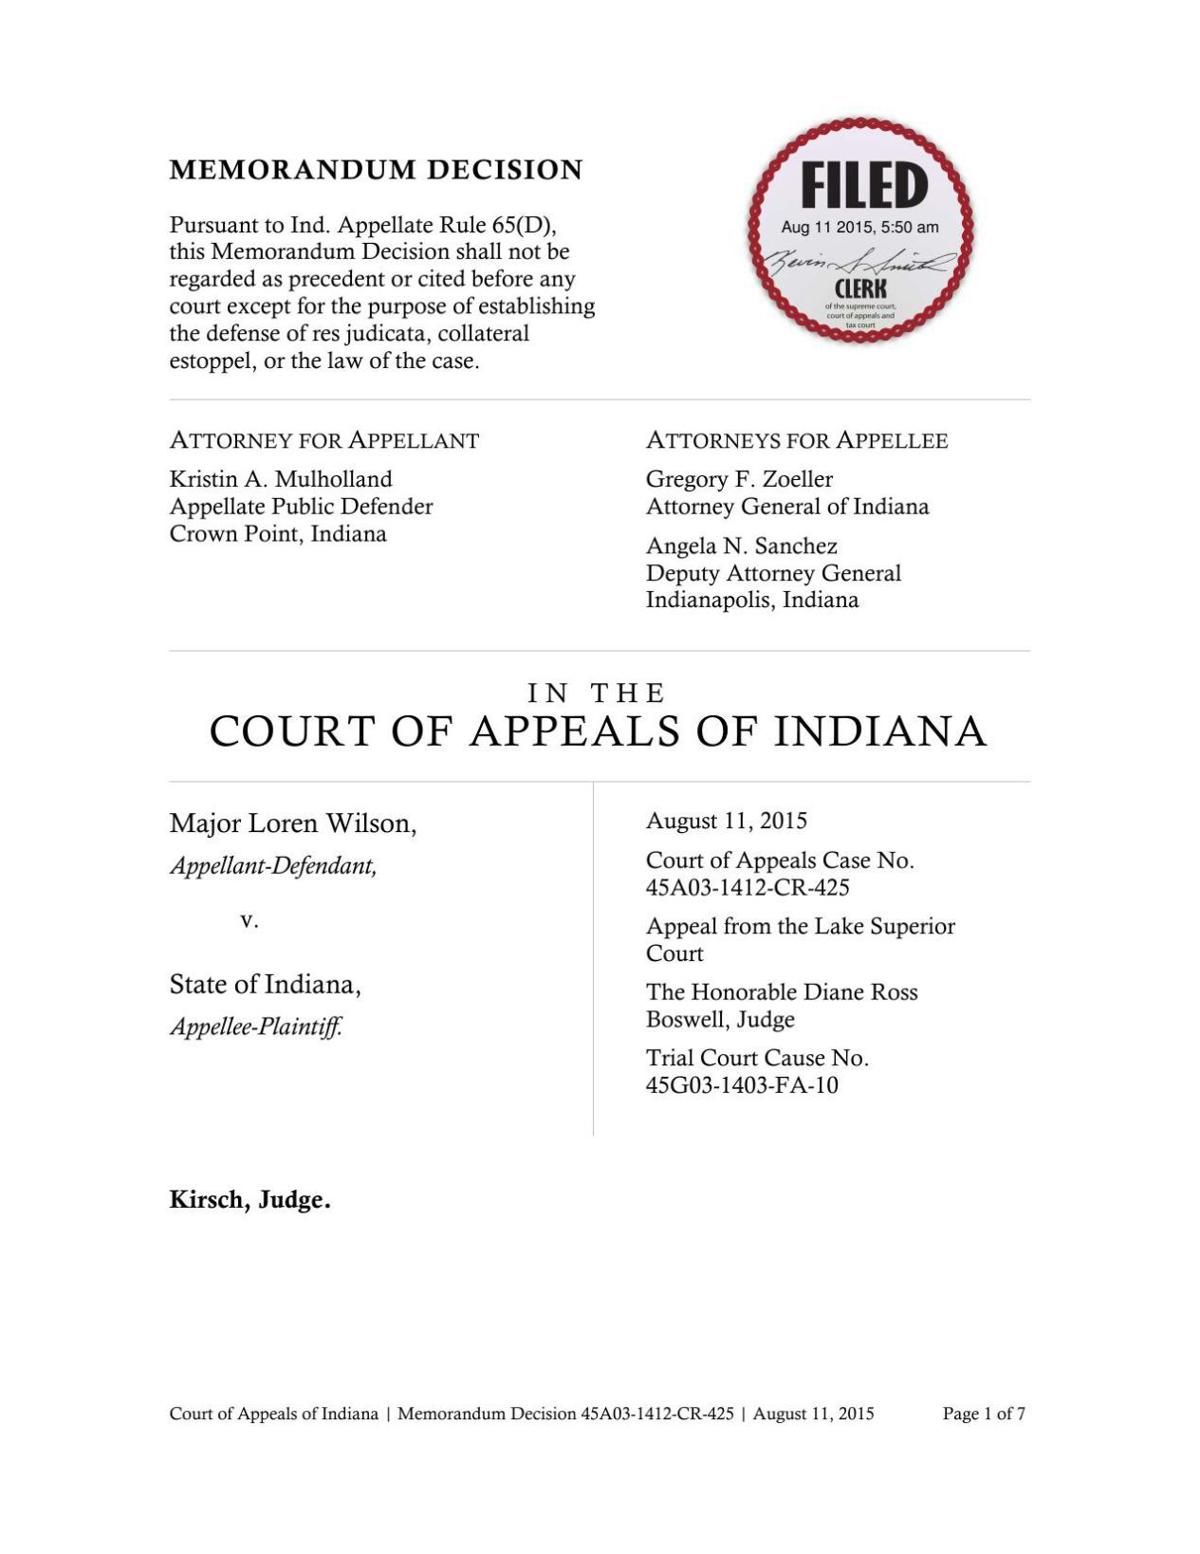 Wilson v. State ruling of Indiana Court of Appeals (2015)